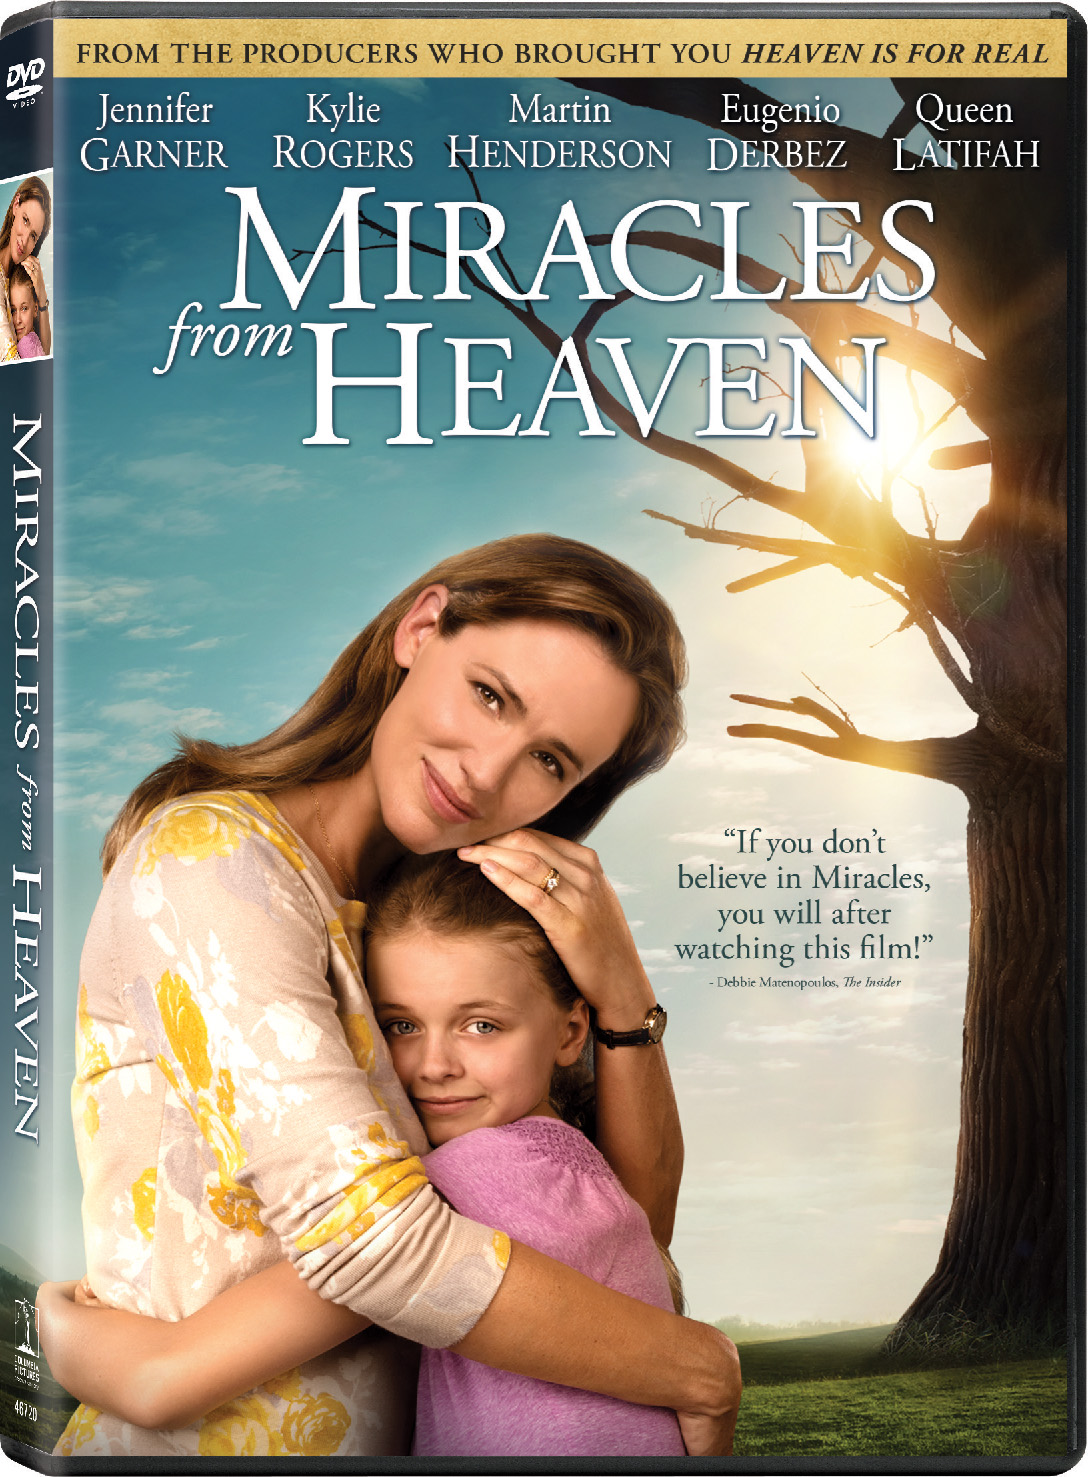 Miracles From Heaven – DVD and Visa Gift Card Giveaway: Awesome Family Film!!